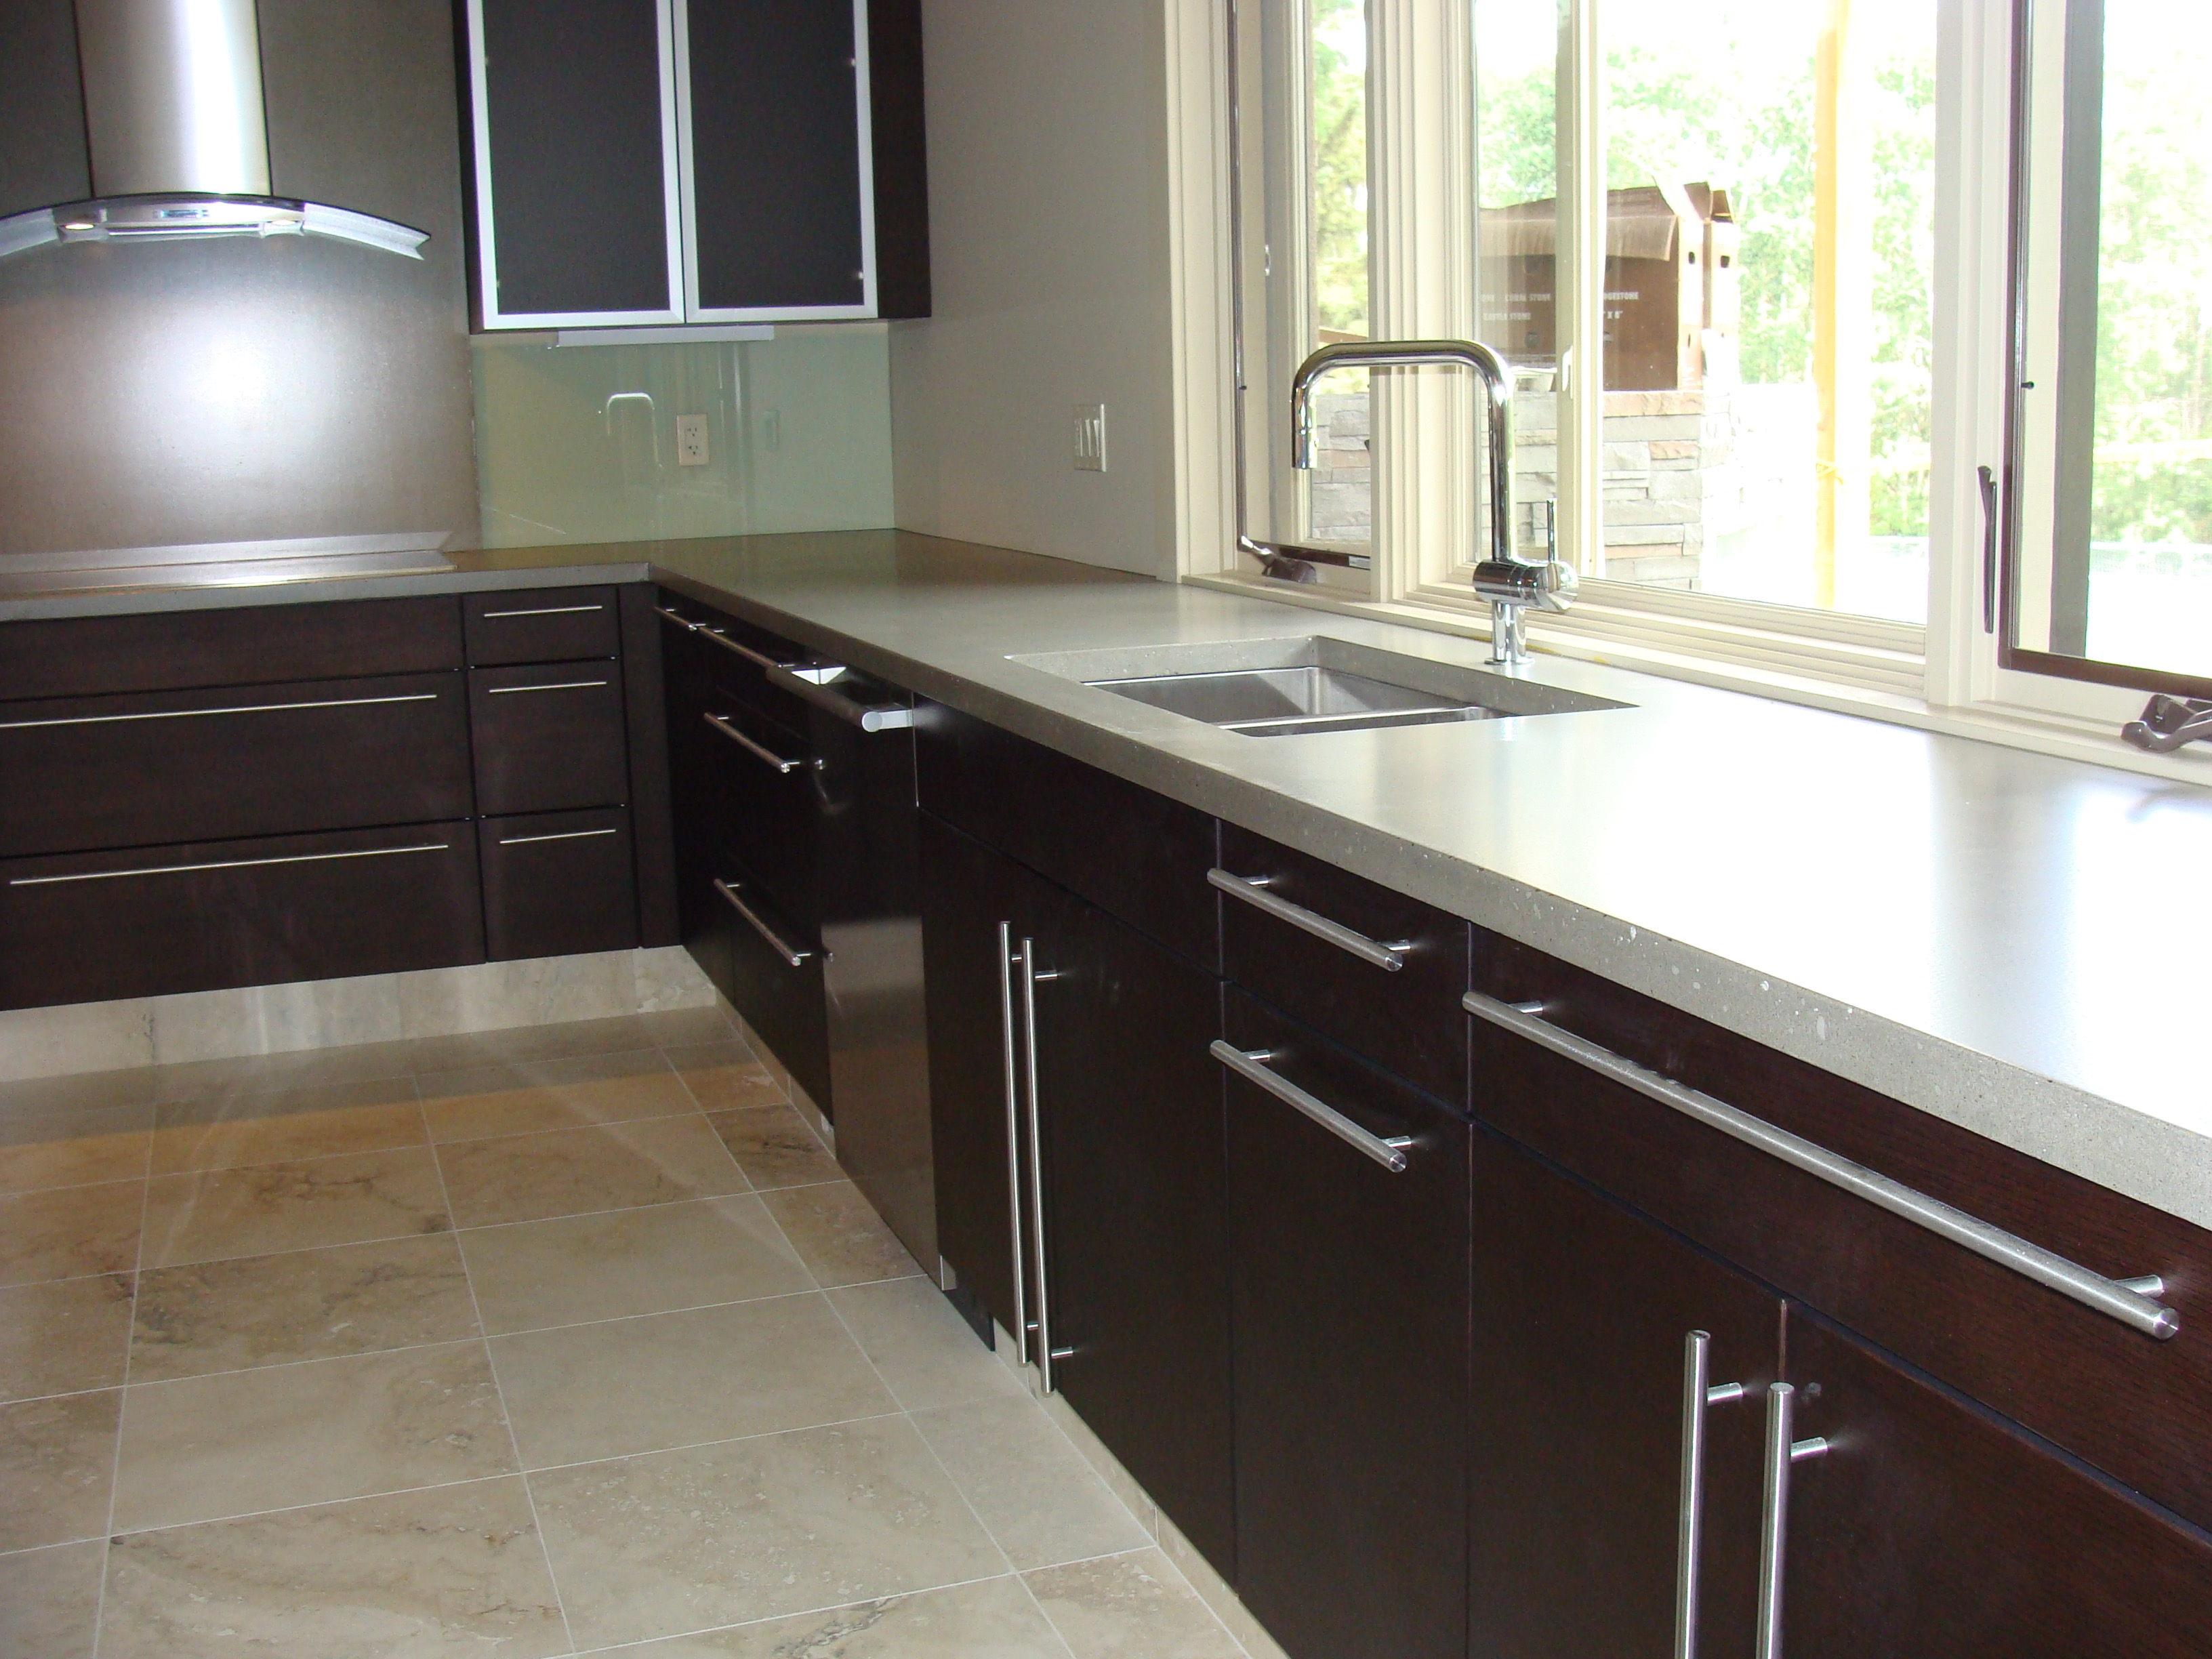 Clays Concrete Countertops - Kitchen